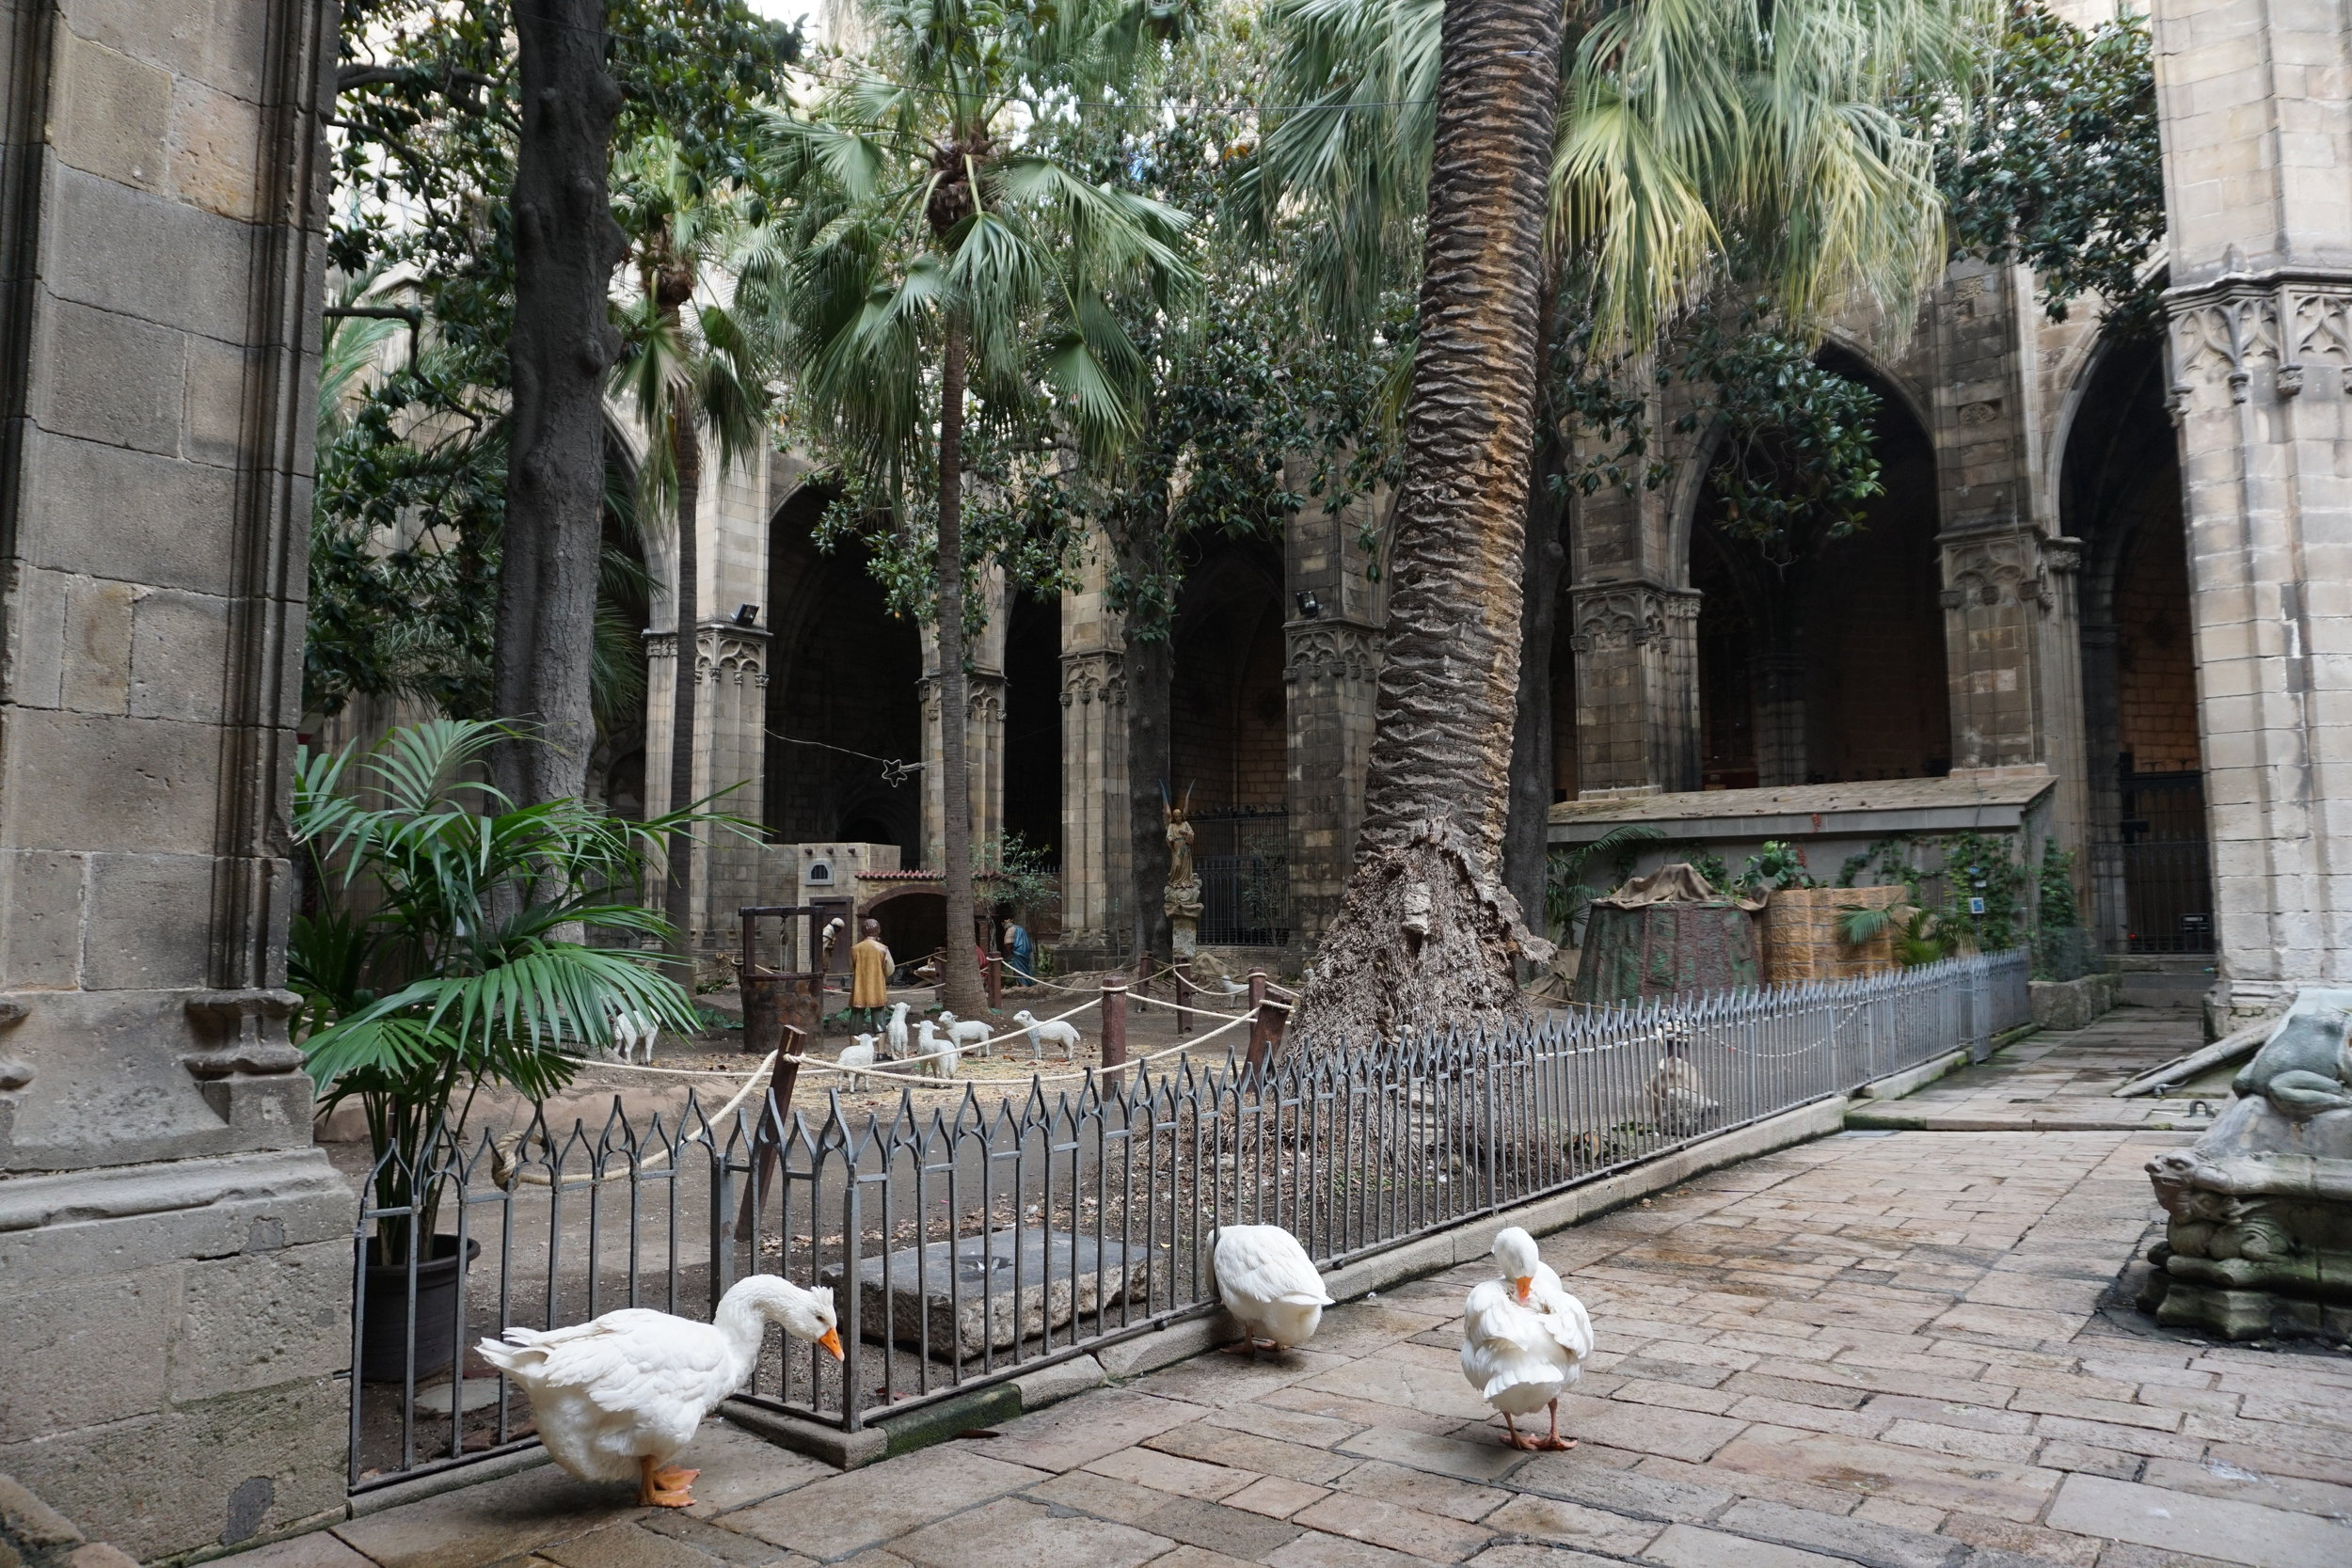 Cloister with 13 white geese